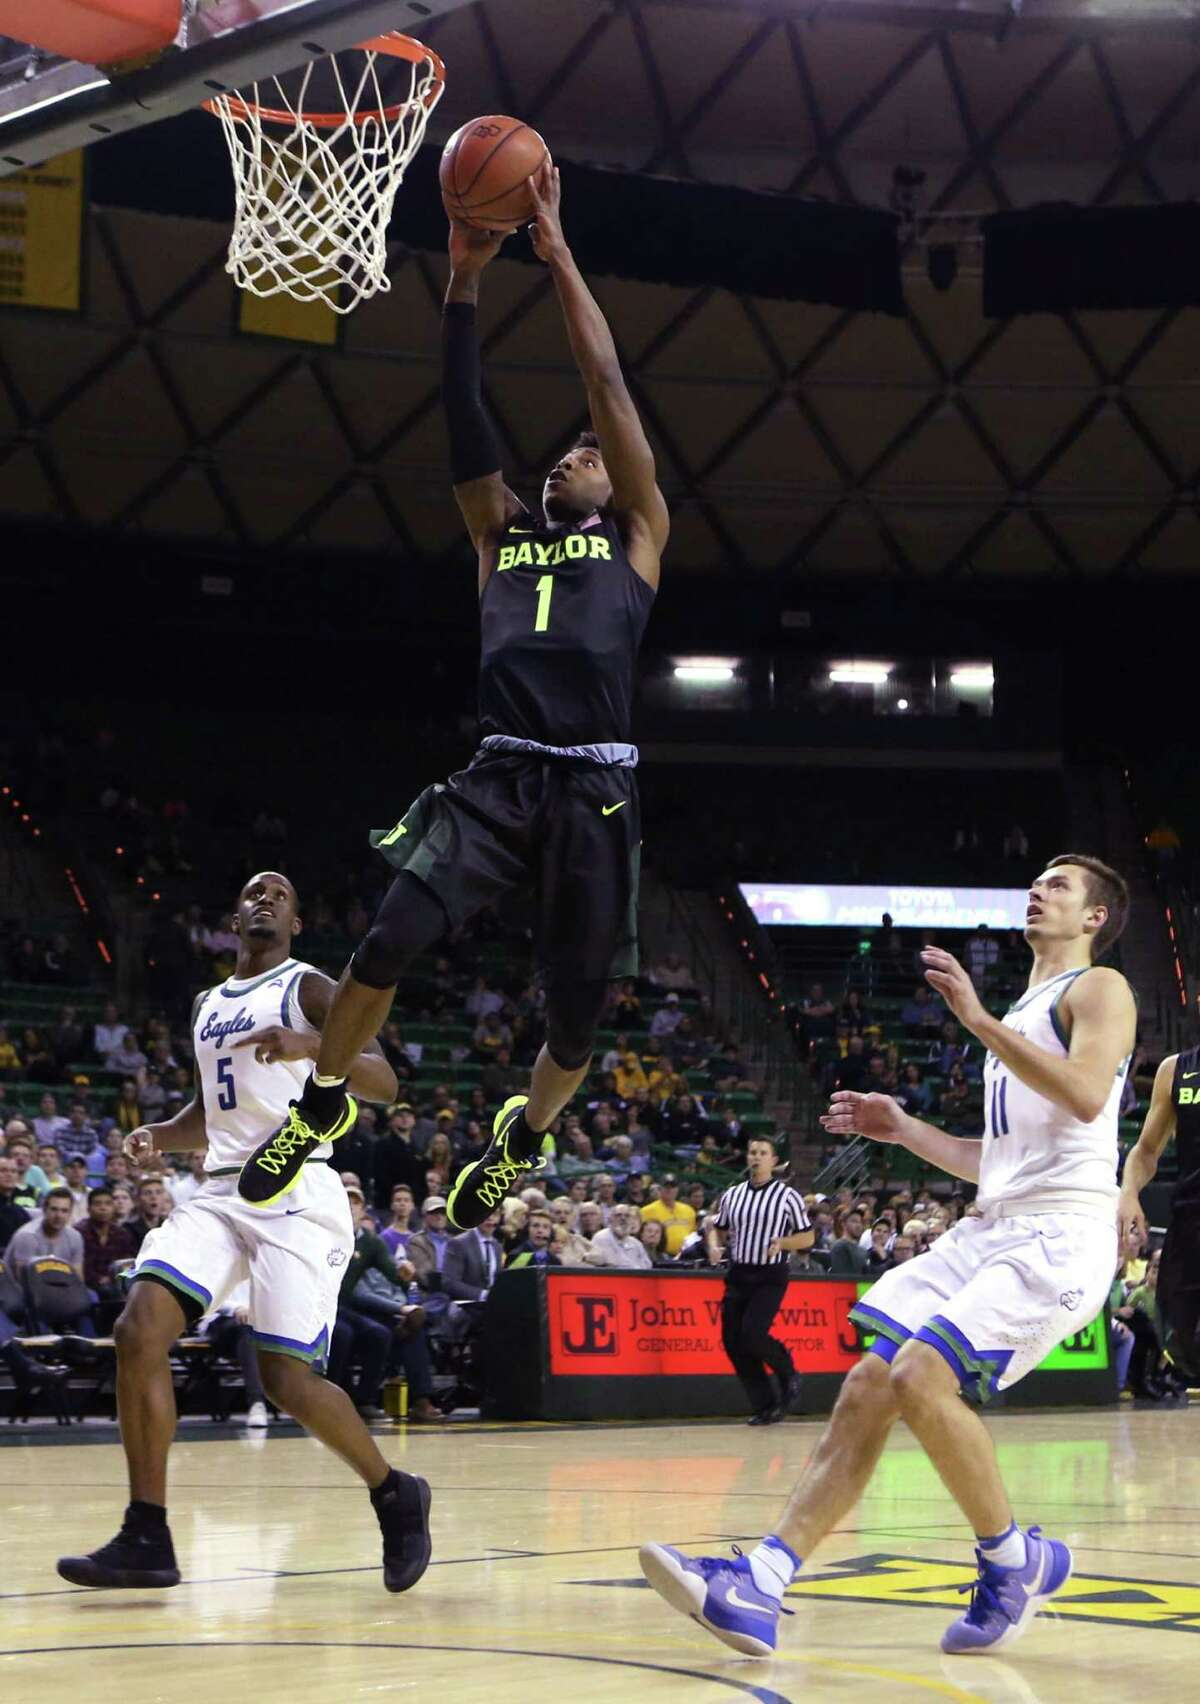 Baylor guard Wendell Mitchell dunks in the Bears' victory over Florida Gulf Coast on Friday night in Waco.